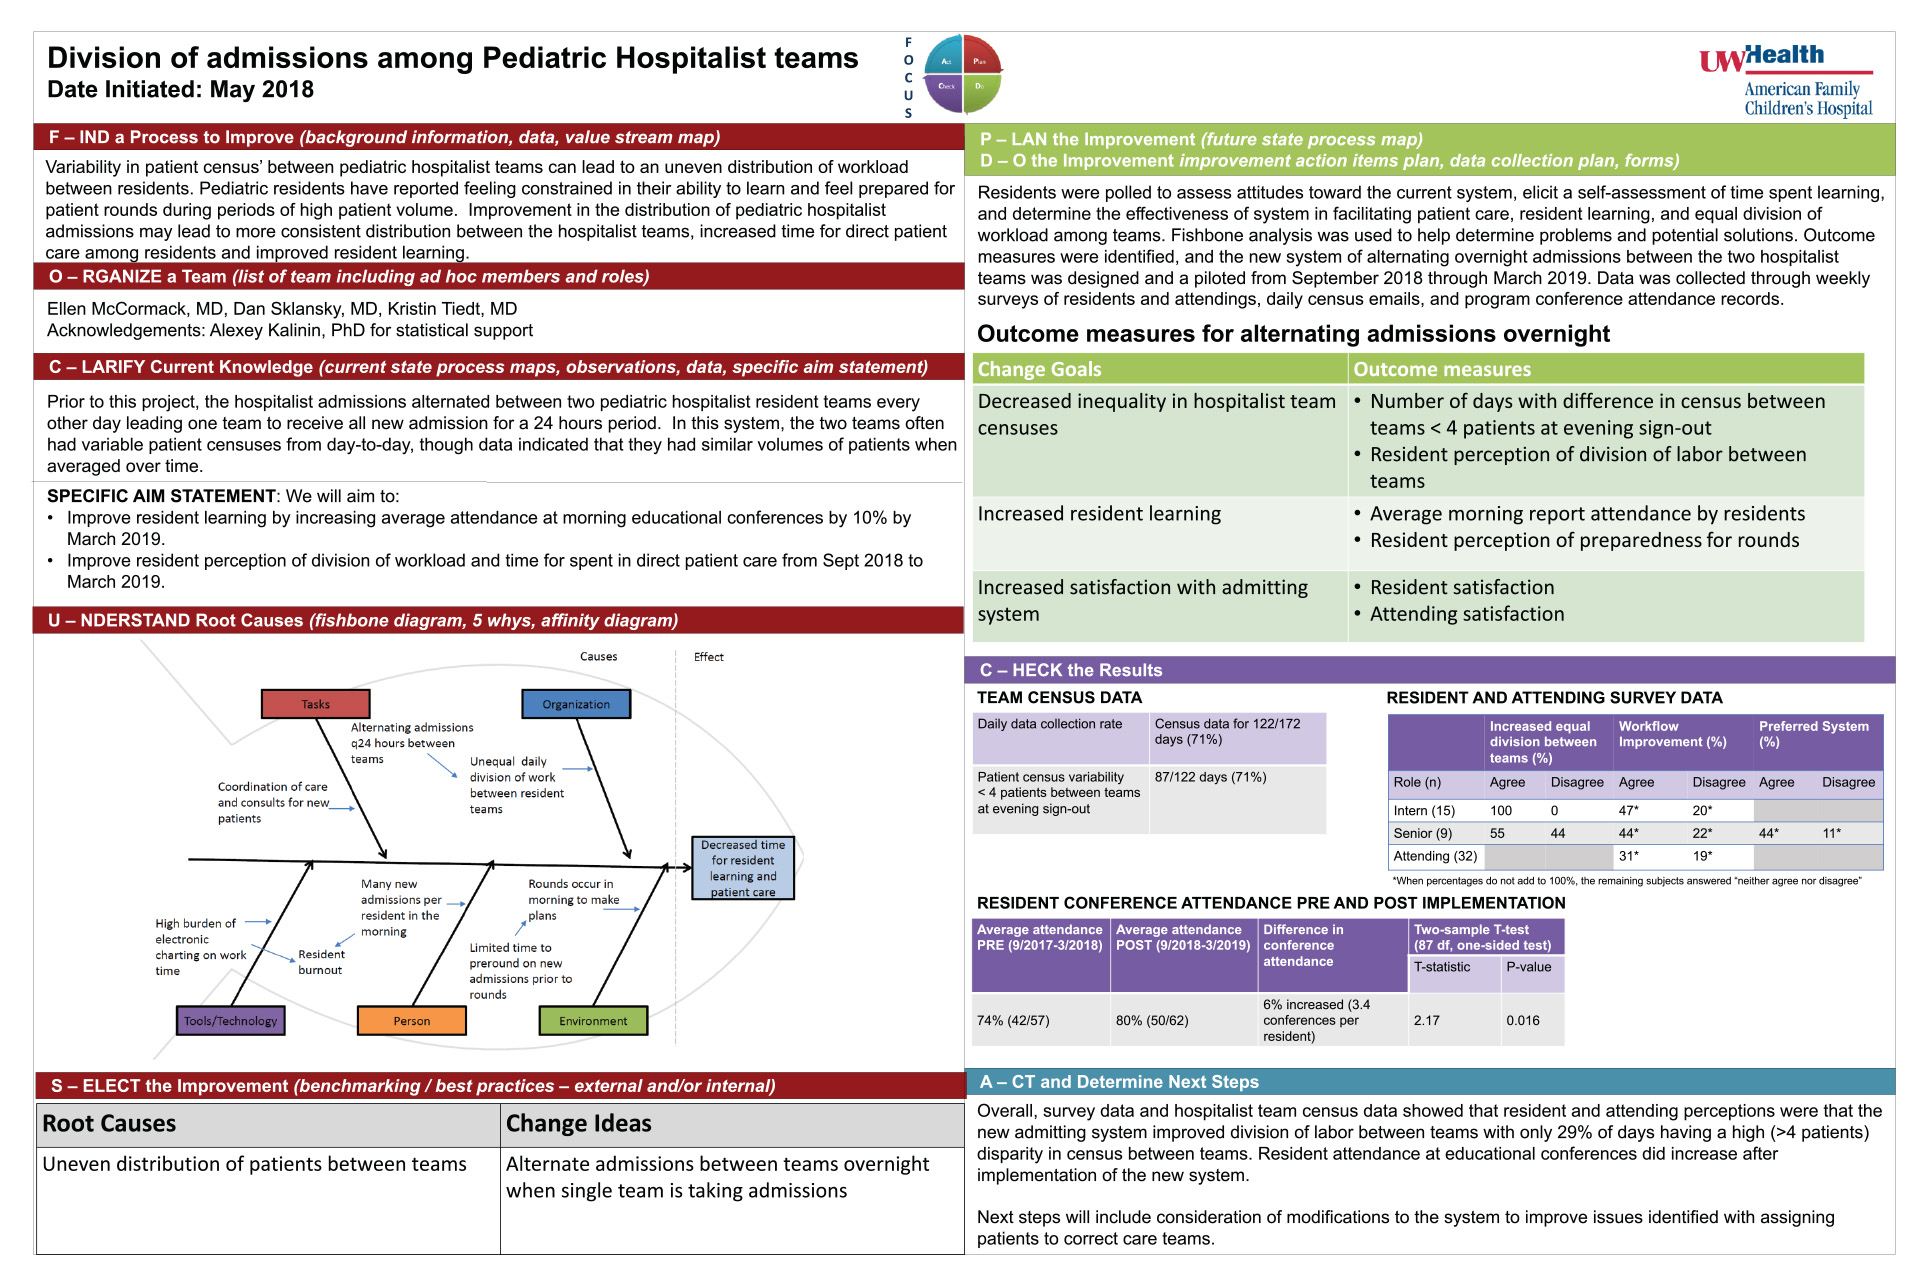 Division of admissions among pediatric hospitalist teams poster image